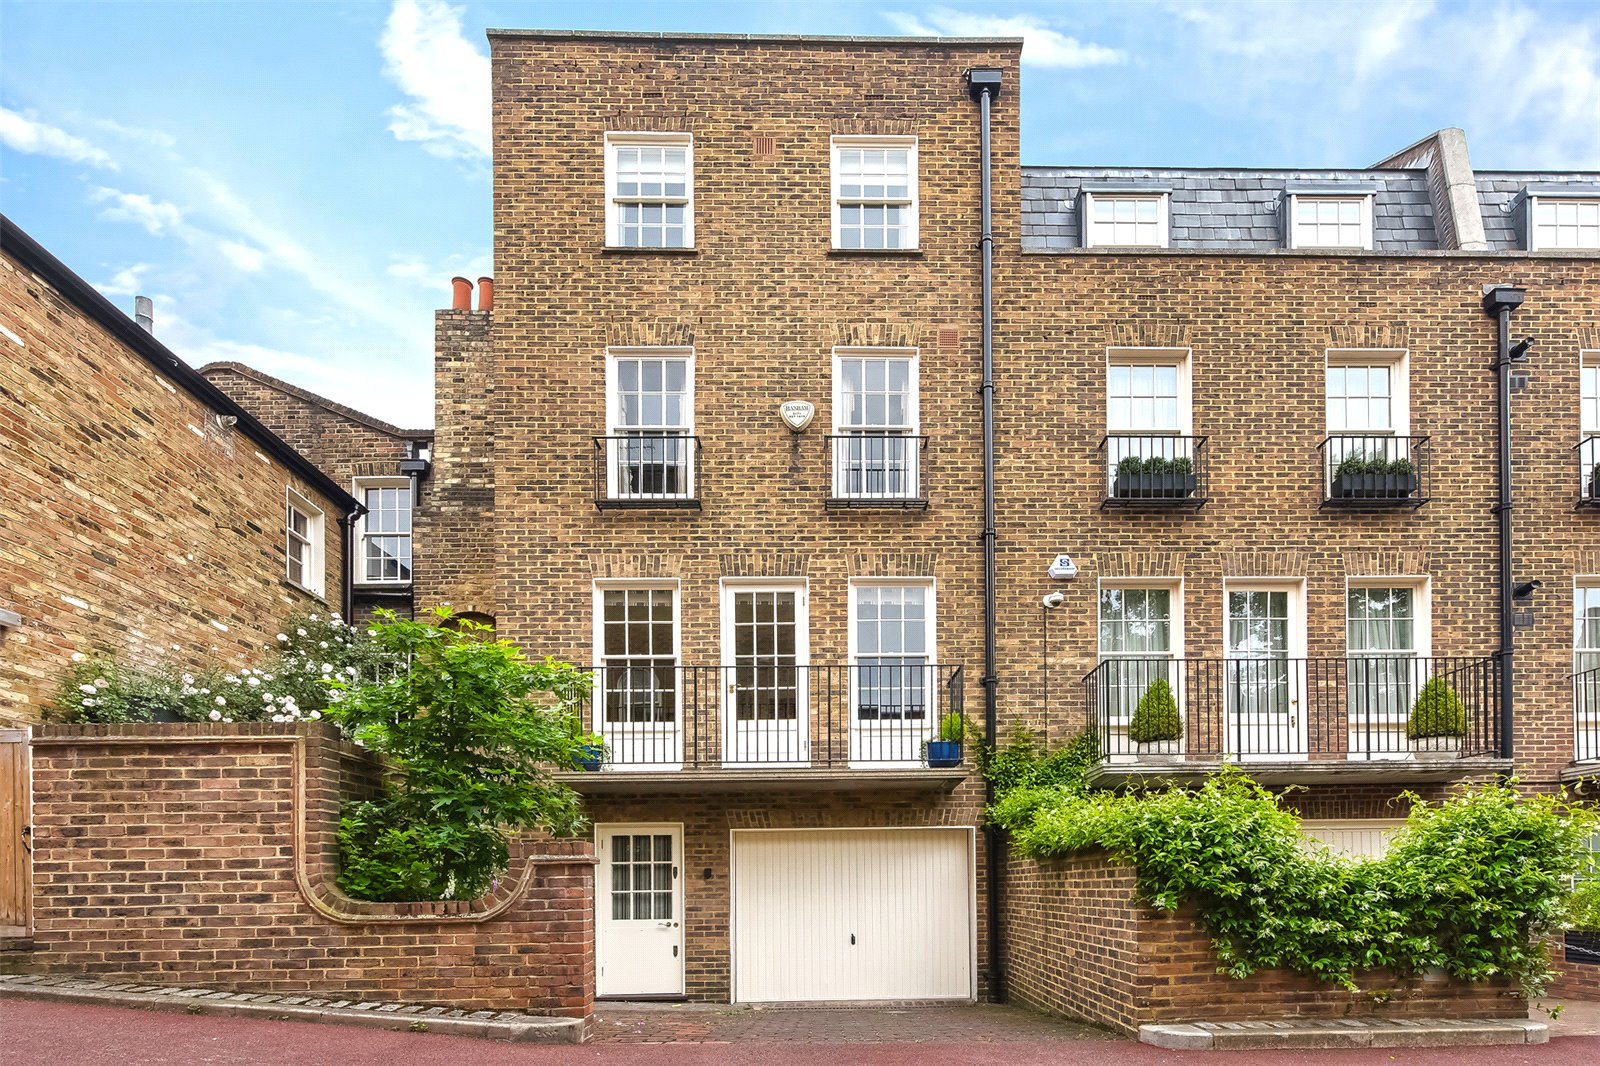 House for Sale at Bourne Street, Belgravia, London, SW1W Bourne Street, Belgravia, London, SW1W